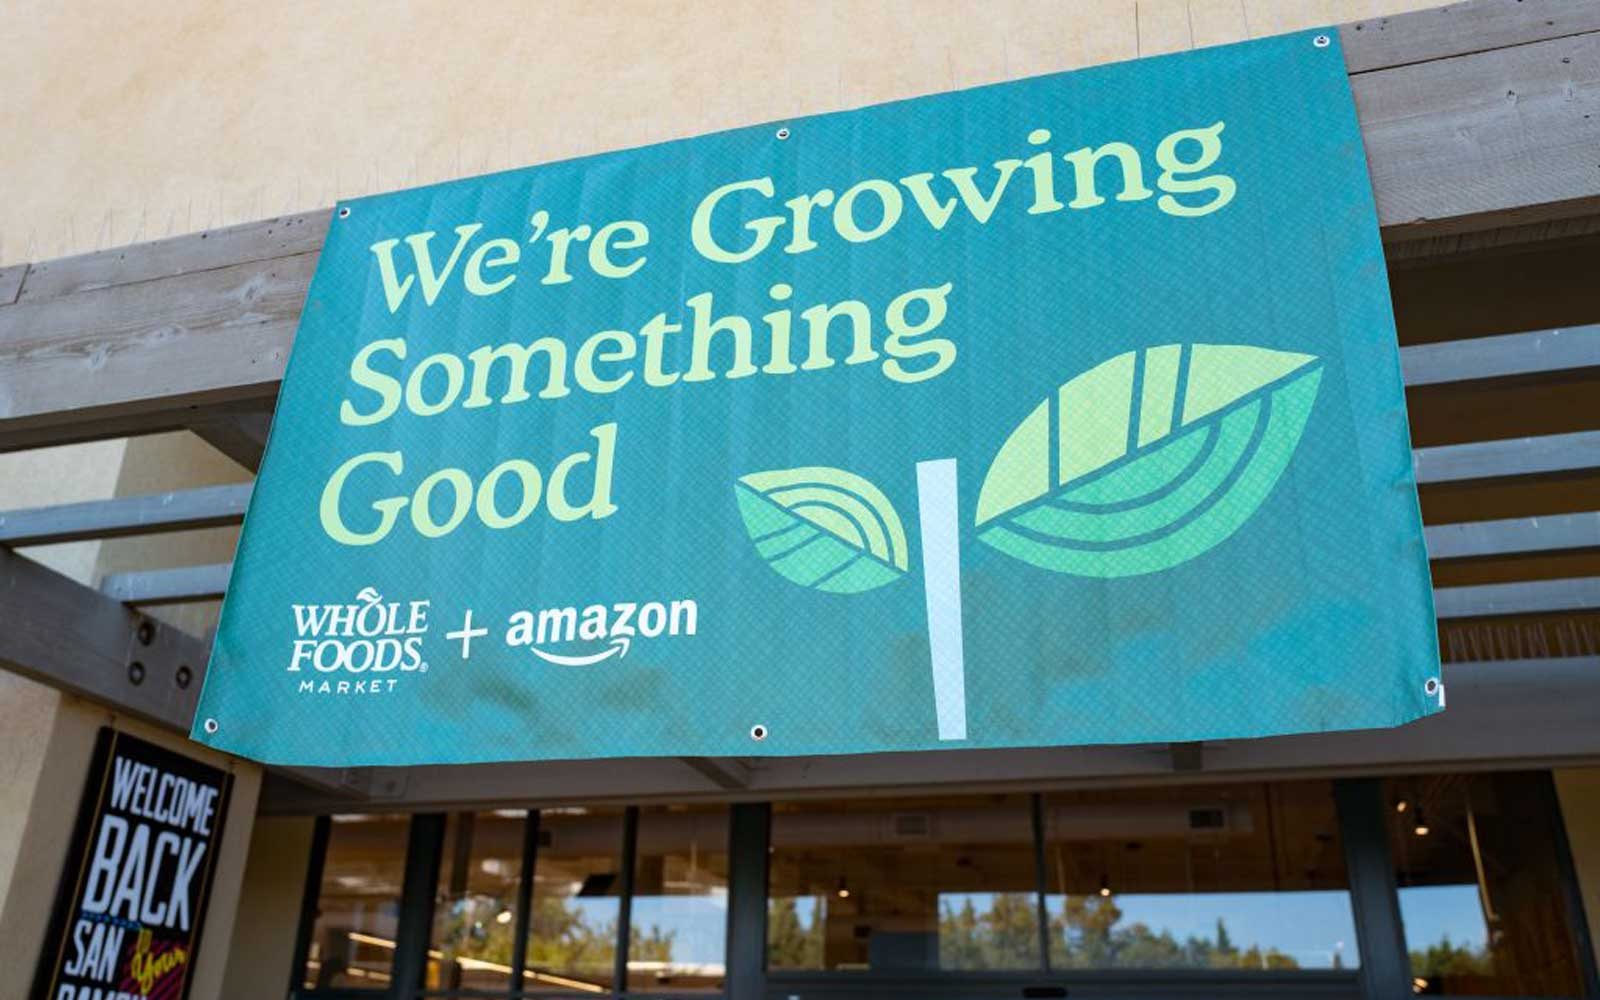 Amazon Is Giving $10 to Prime Members Just for Shopping at Whole Foods This Week